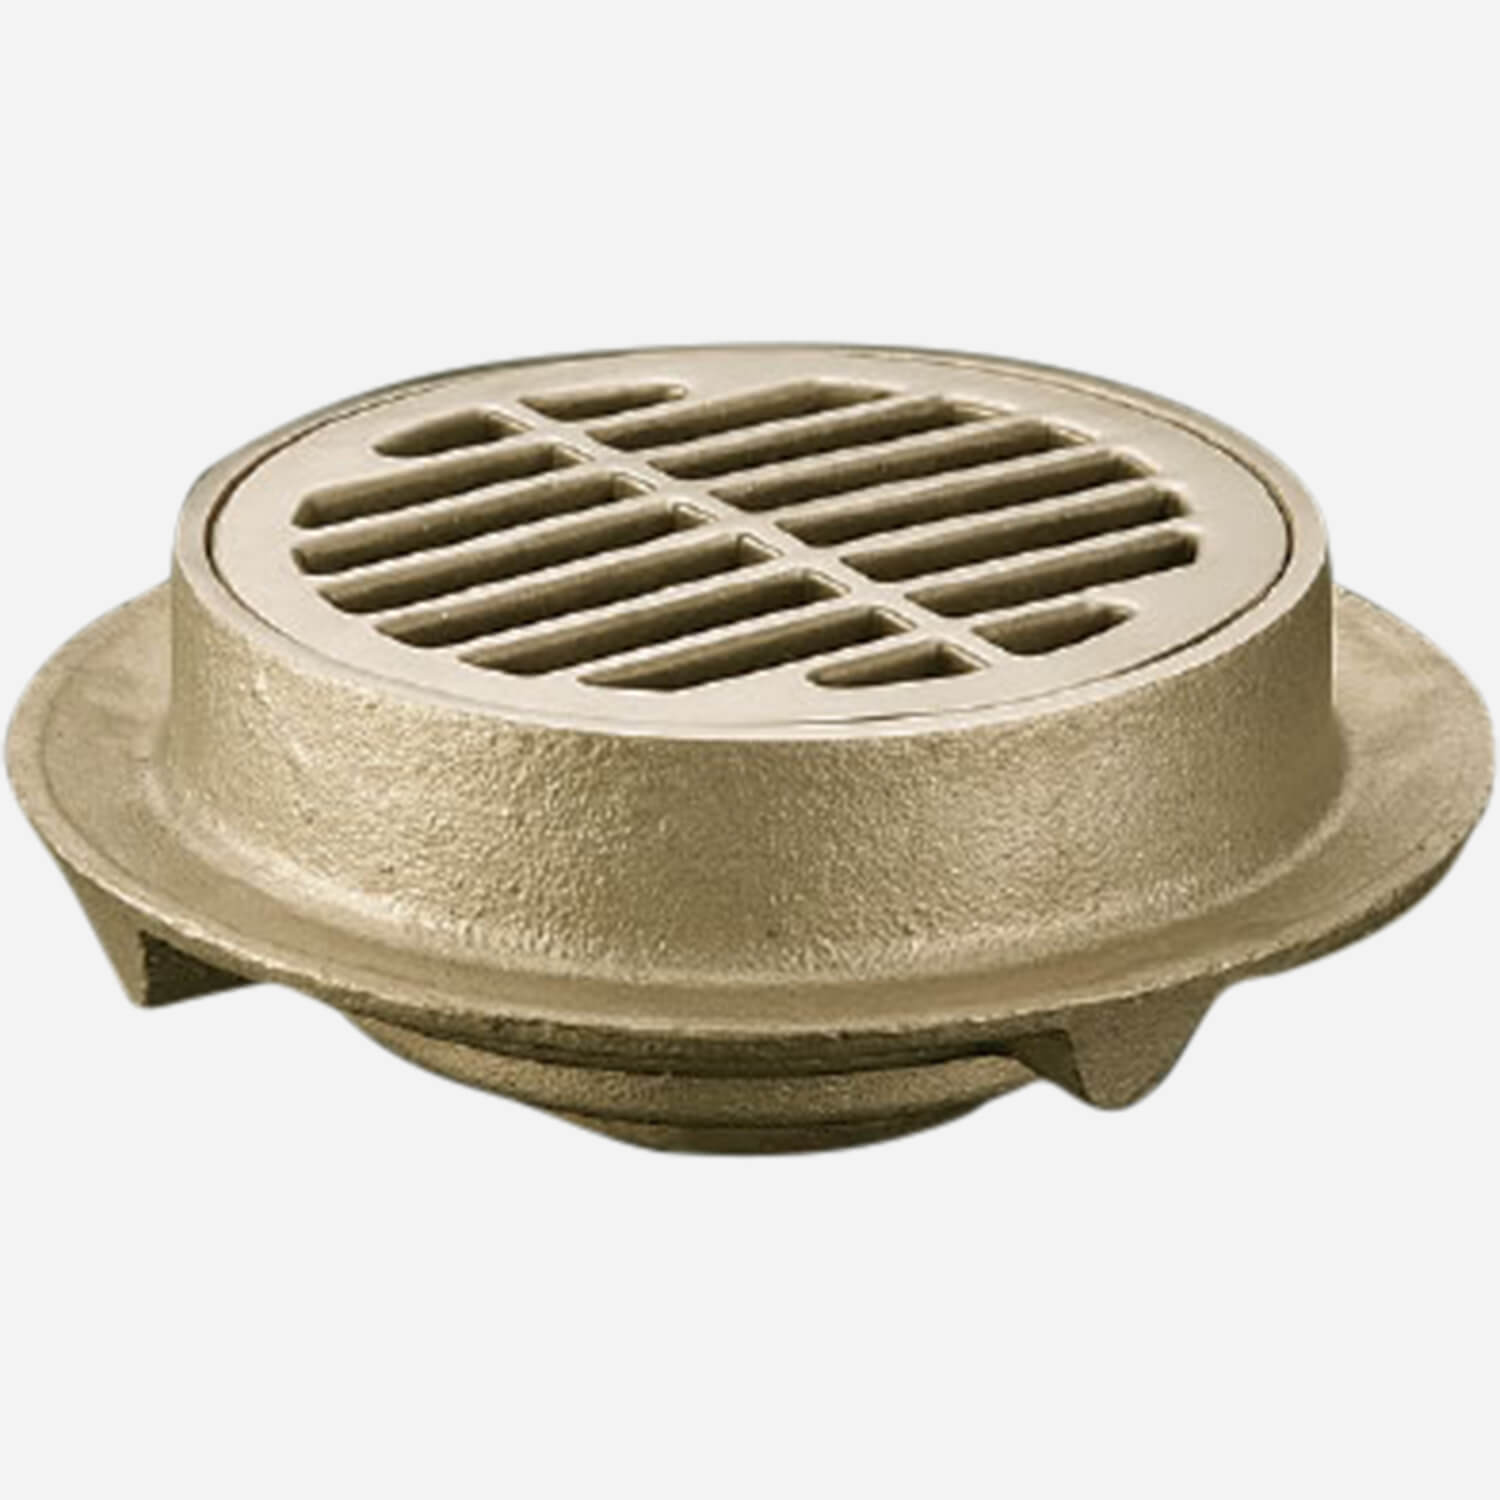 Medium Duty Top Floor Drain